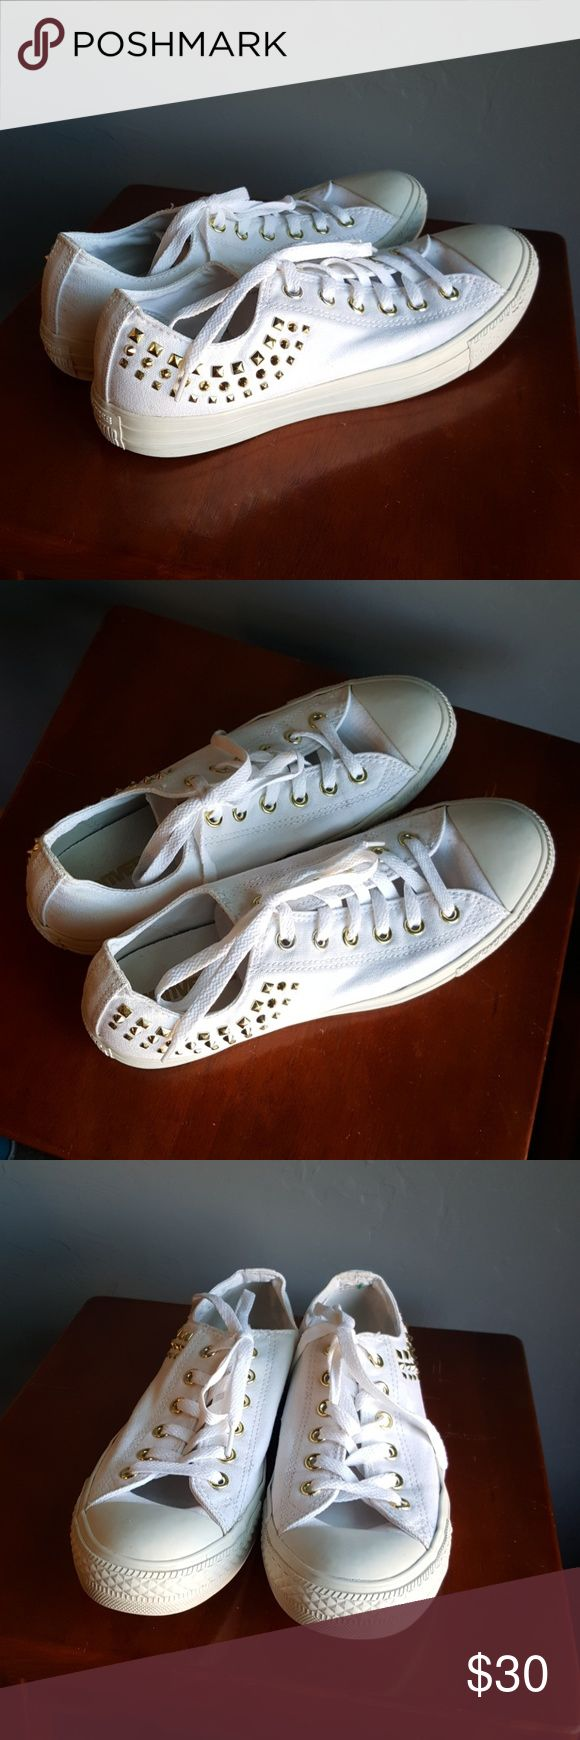 Converse Chuck Taylor White Gold Stud All Stars Very cute Authentic In good condition Tiny spot on the back seen in sixth photo Women's 10 Converse Shoes Sneakers